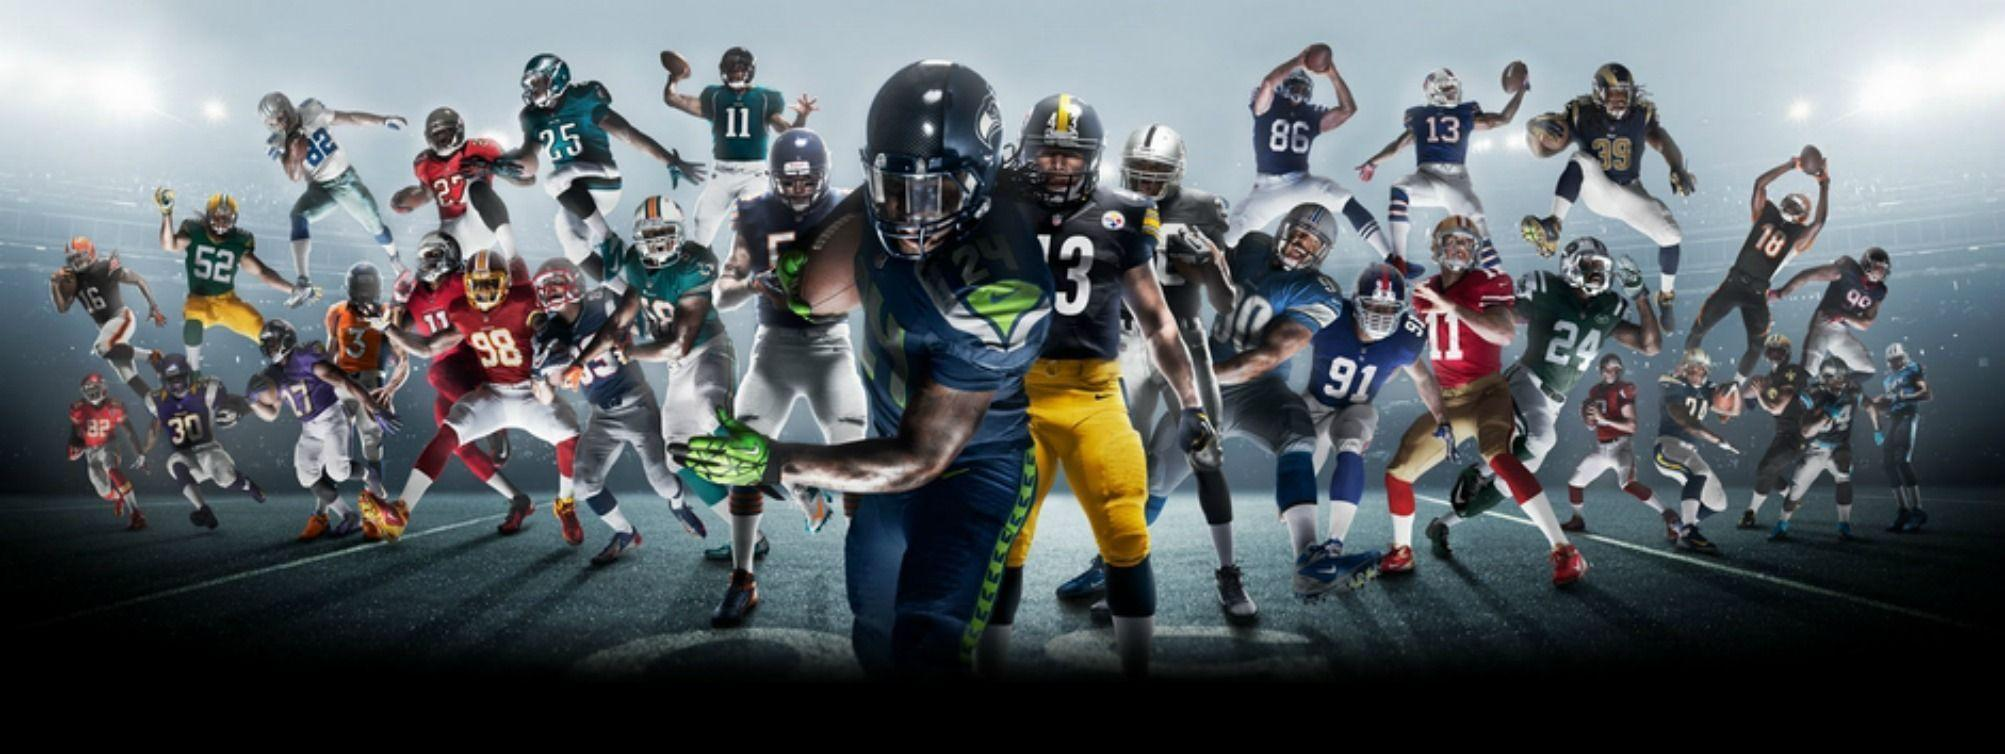 50 NFL Desktop Wallpapers   Download at WallpaperBro 2005x754